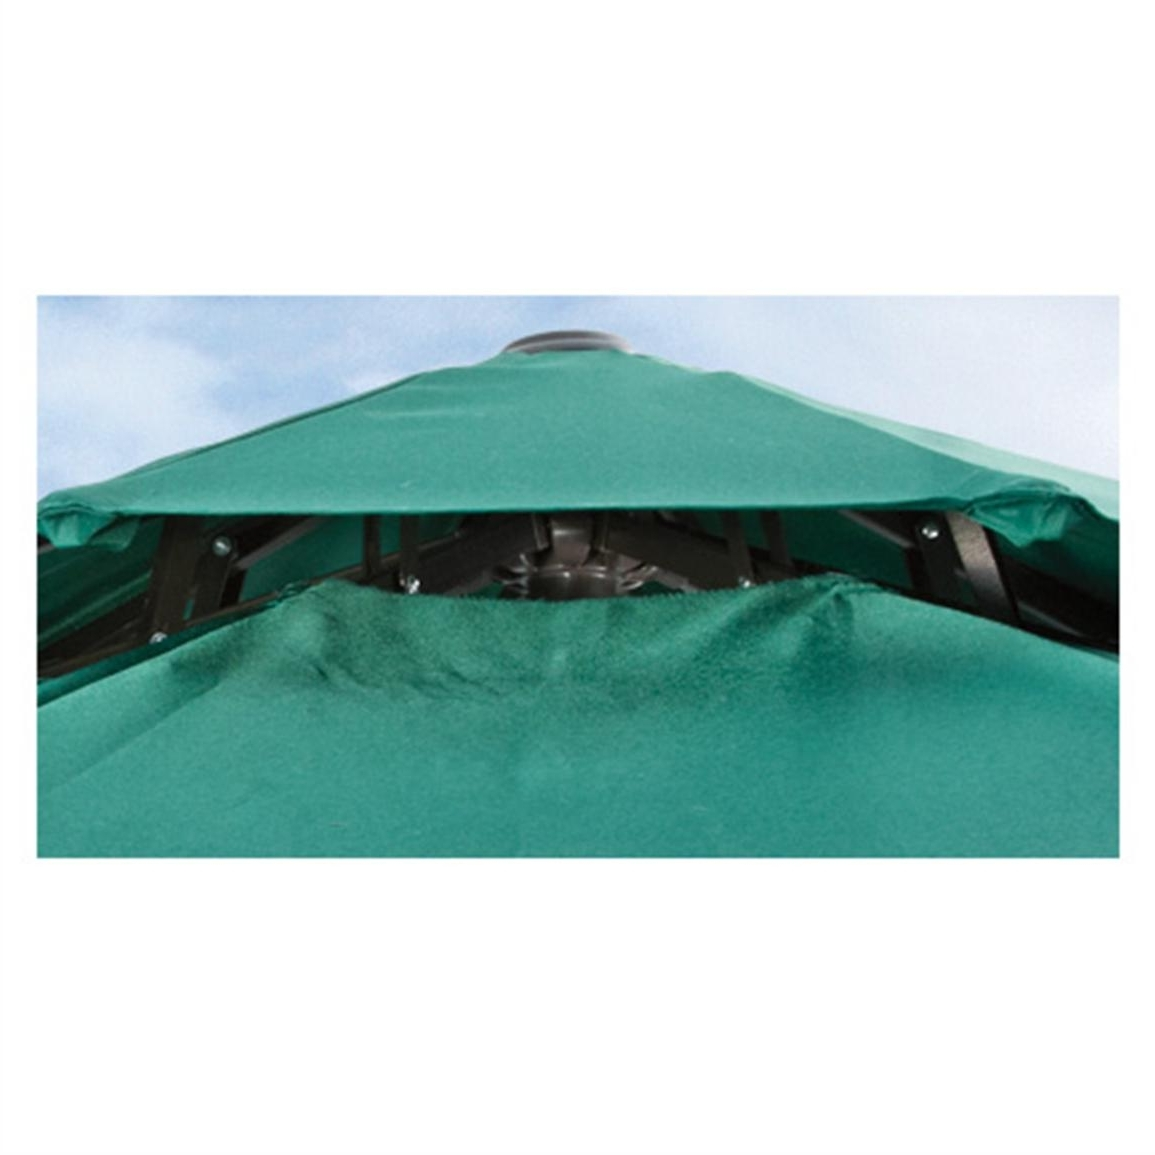 Most Popular Vented Patio Umbrellas Regarding Castlecreek 9' Two Tier Patio Umbrella With Crank – 581840, Patio (View 6 of 20)